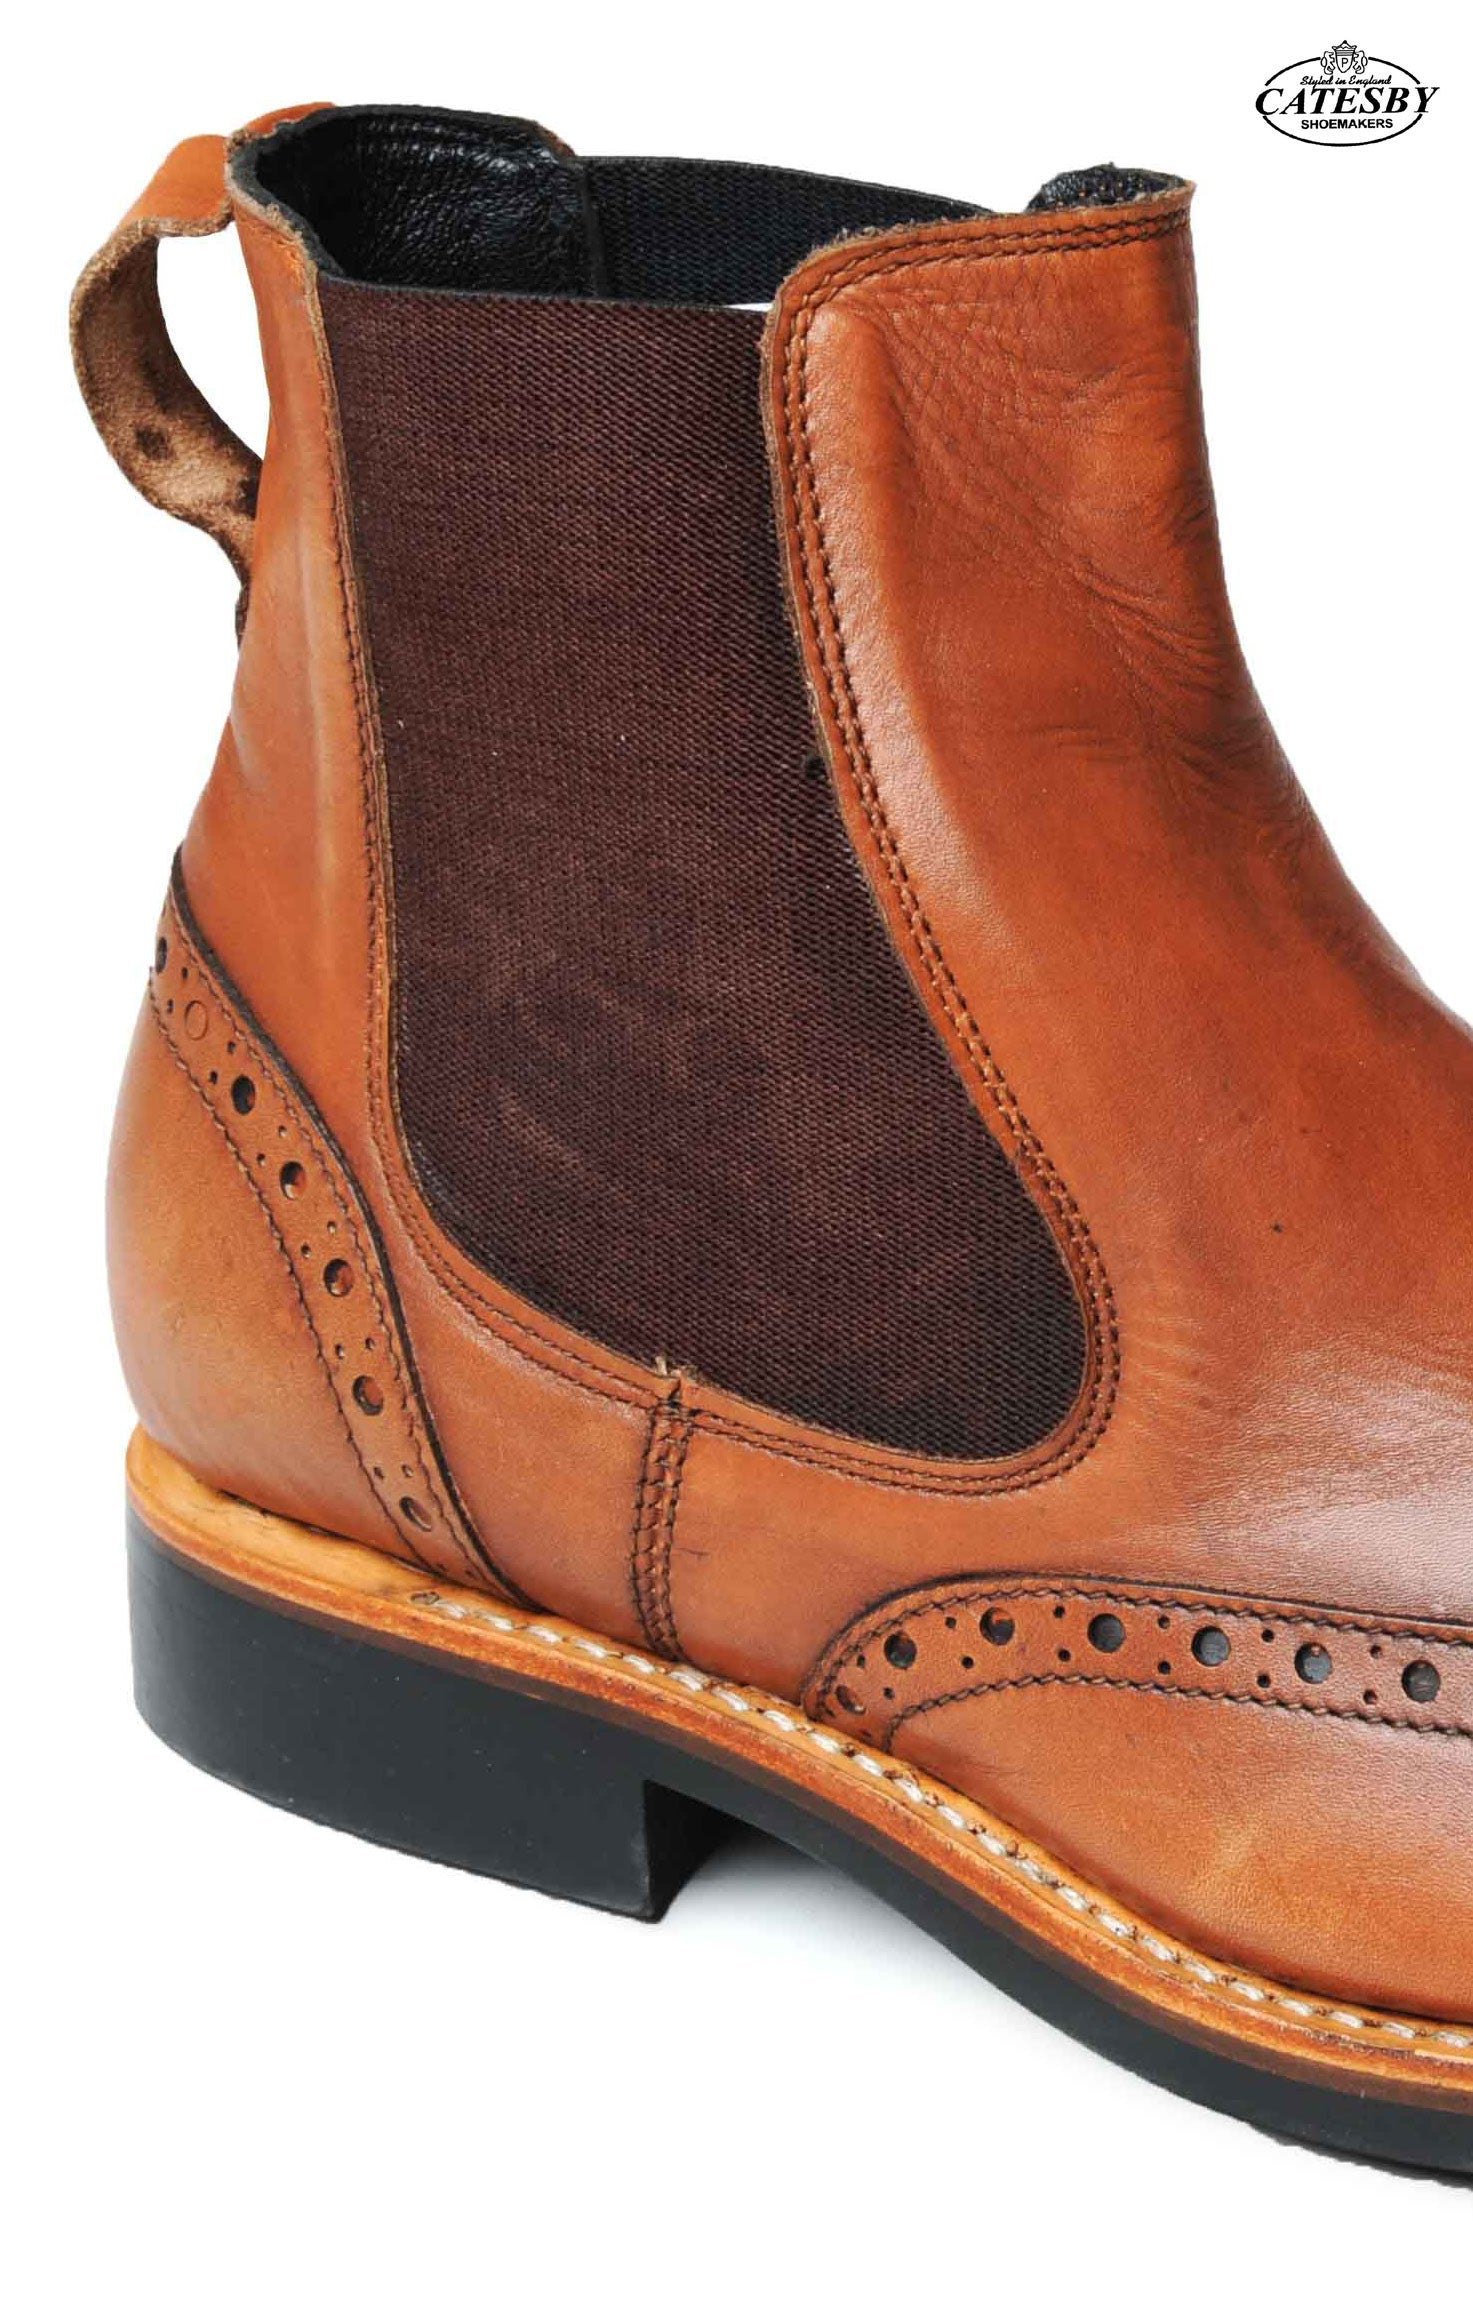 showing the traditional slip on elastic gussets for pull on boot - quick and easy, no tiresome lacing